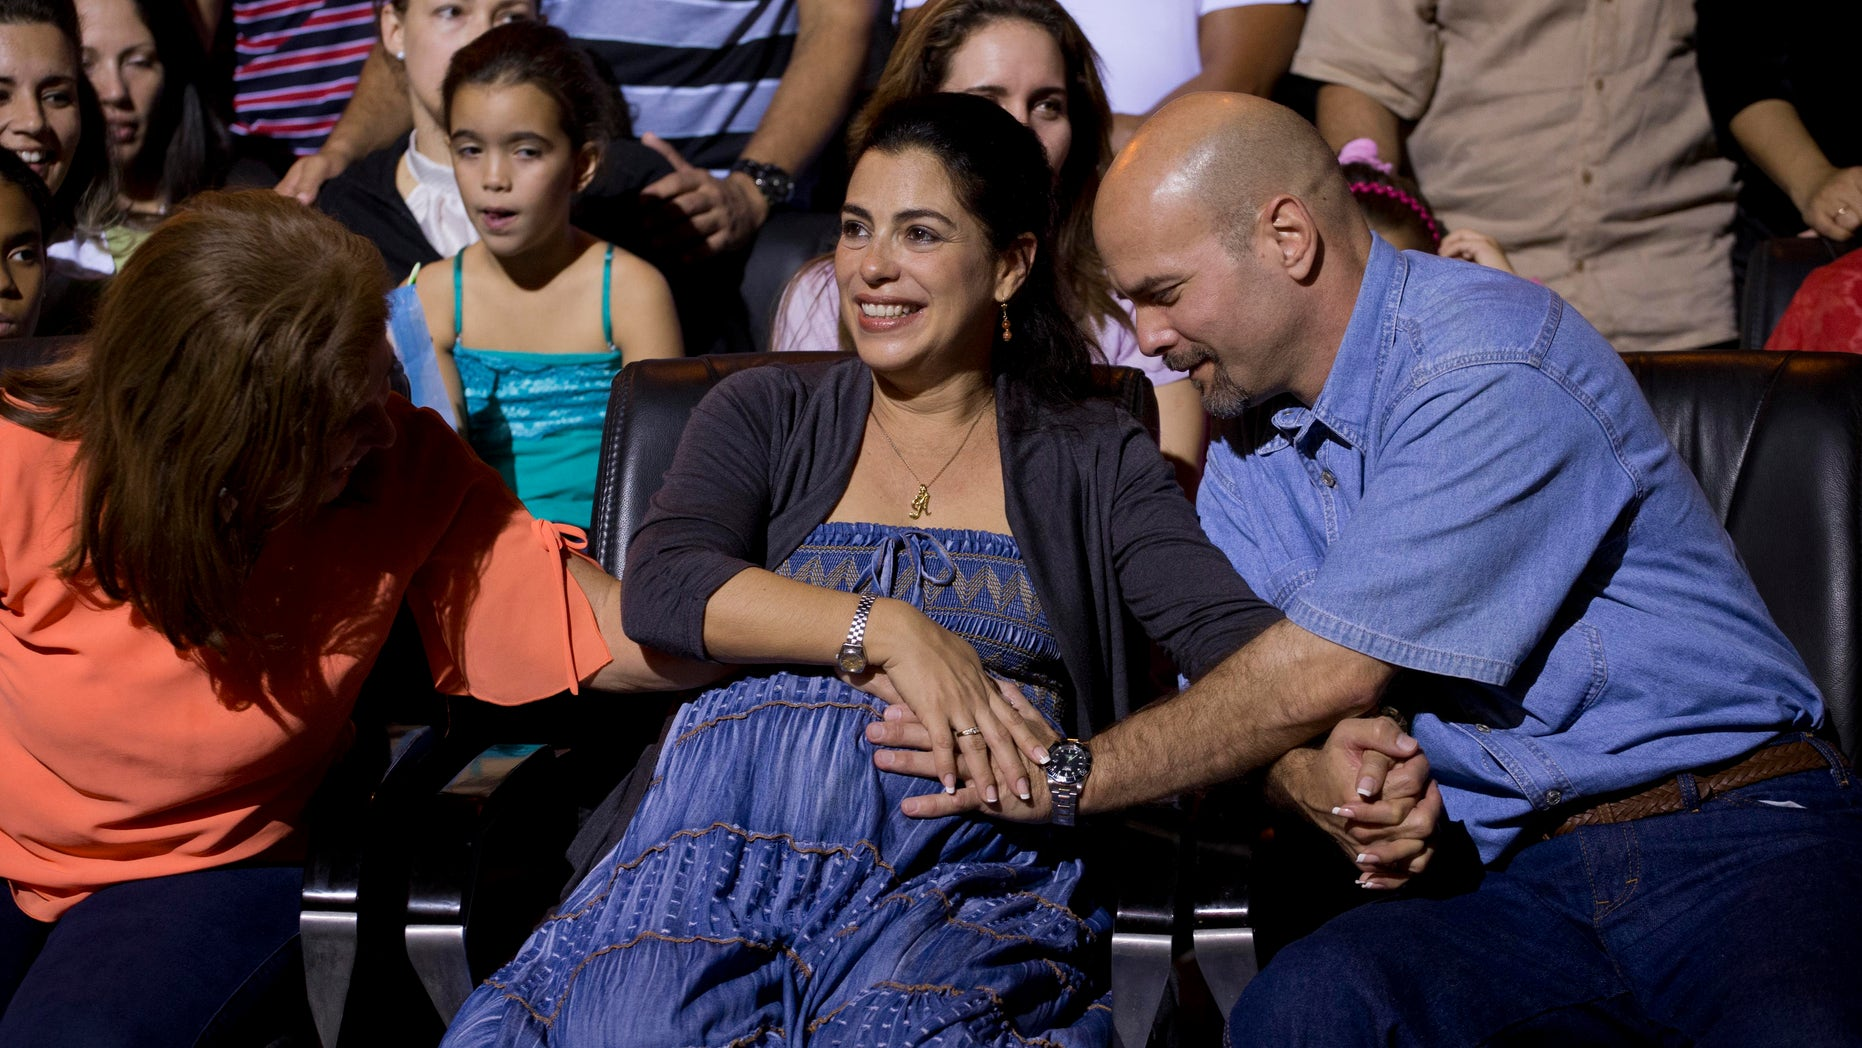 """Gerardo Hernandez, right, member of """"The Cuban Five,""""  touches the belly of his pregnant wife Adriana Perez, during a concert of singer Silvio Rodriguez in Havana, Cuba, Saturday, Dec. 20, 2014. Hernandez flew back to their homeland on Wednesday in a quiet exchange of imprisoned spies, part of a historic agreement to restore relations between the two long-hostile countries. (AP Photo/Ramon Espinosa)"""